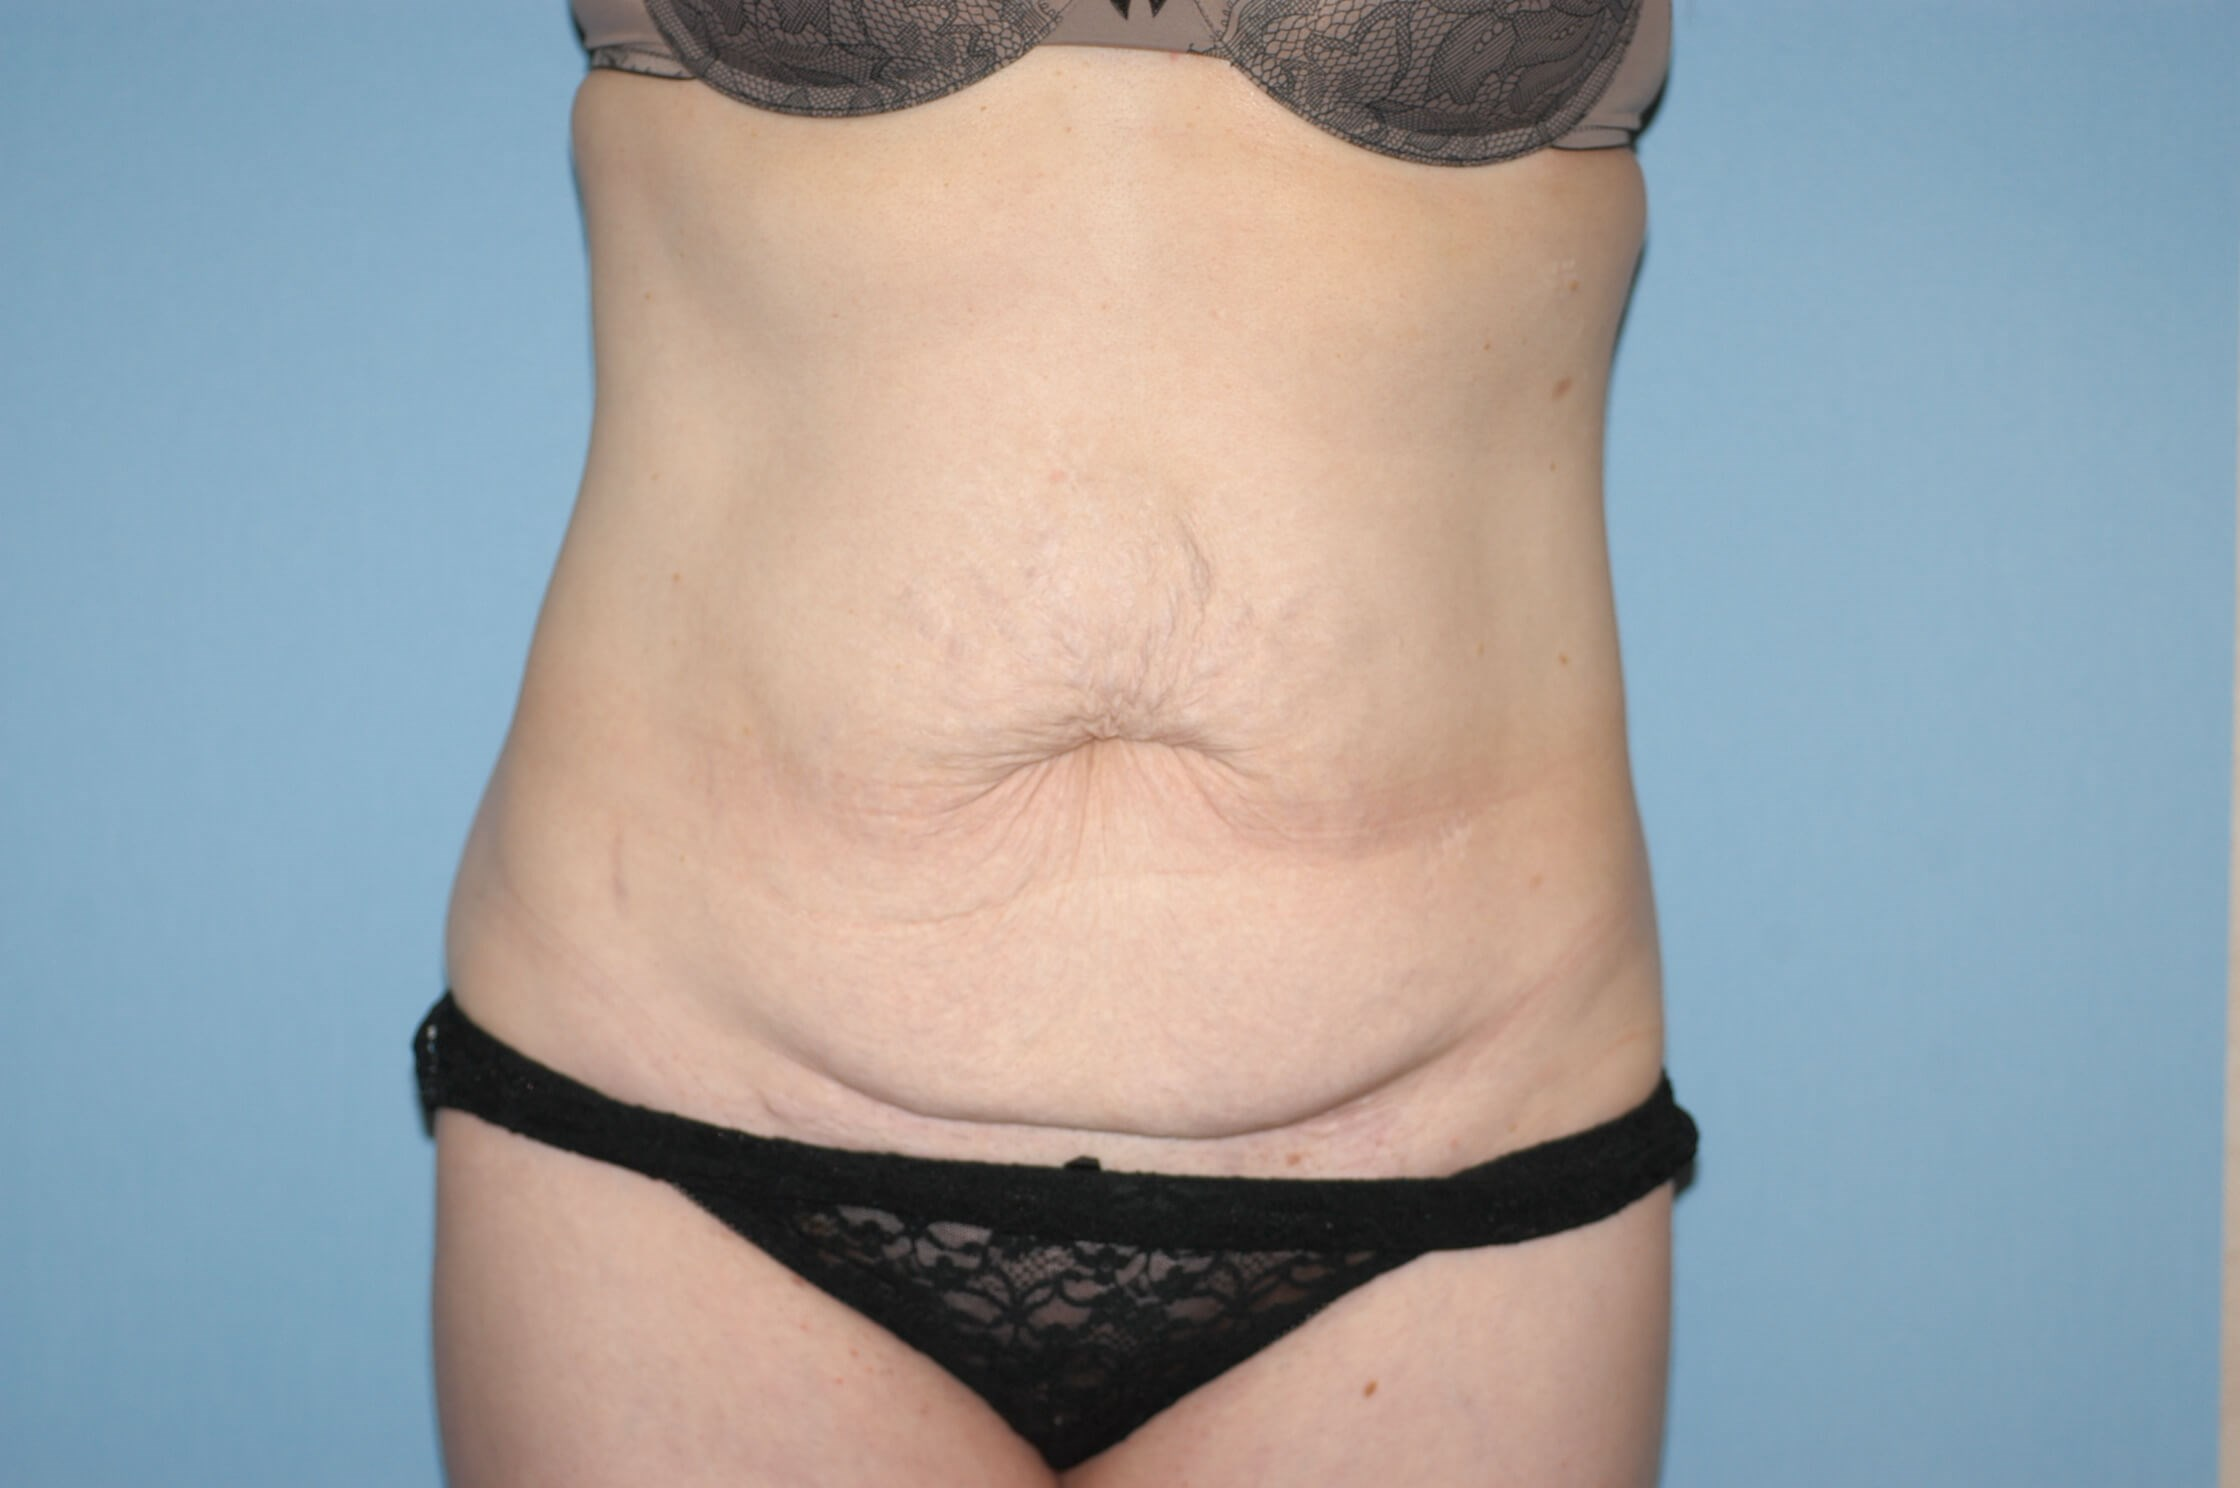 Long Island Mom Has Tummy Tuck After Weight Loss Surgery With Dr